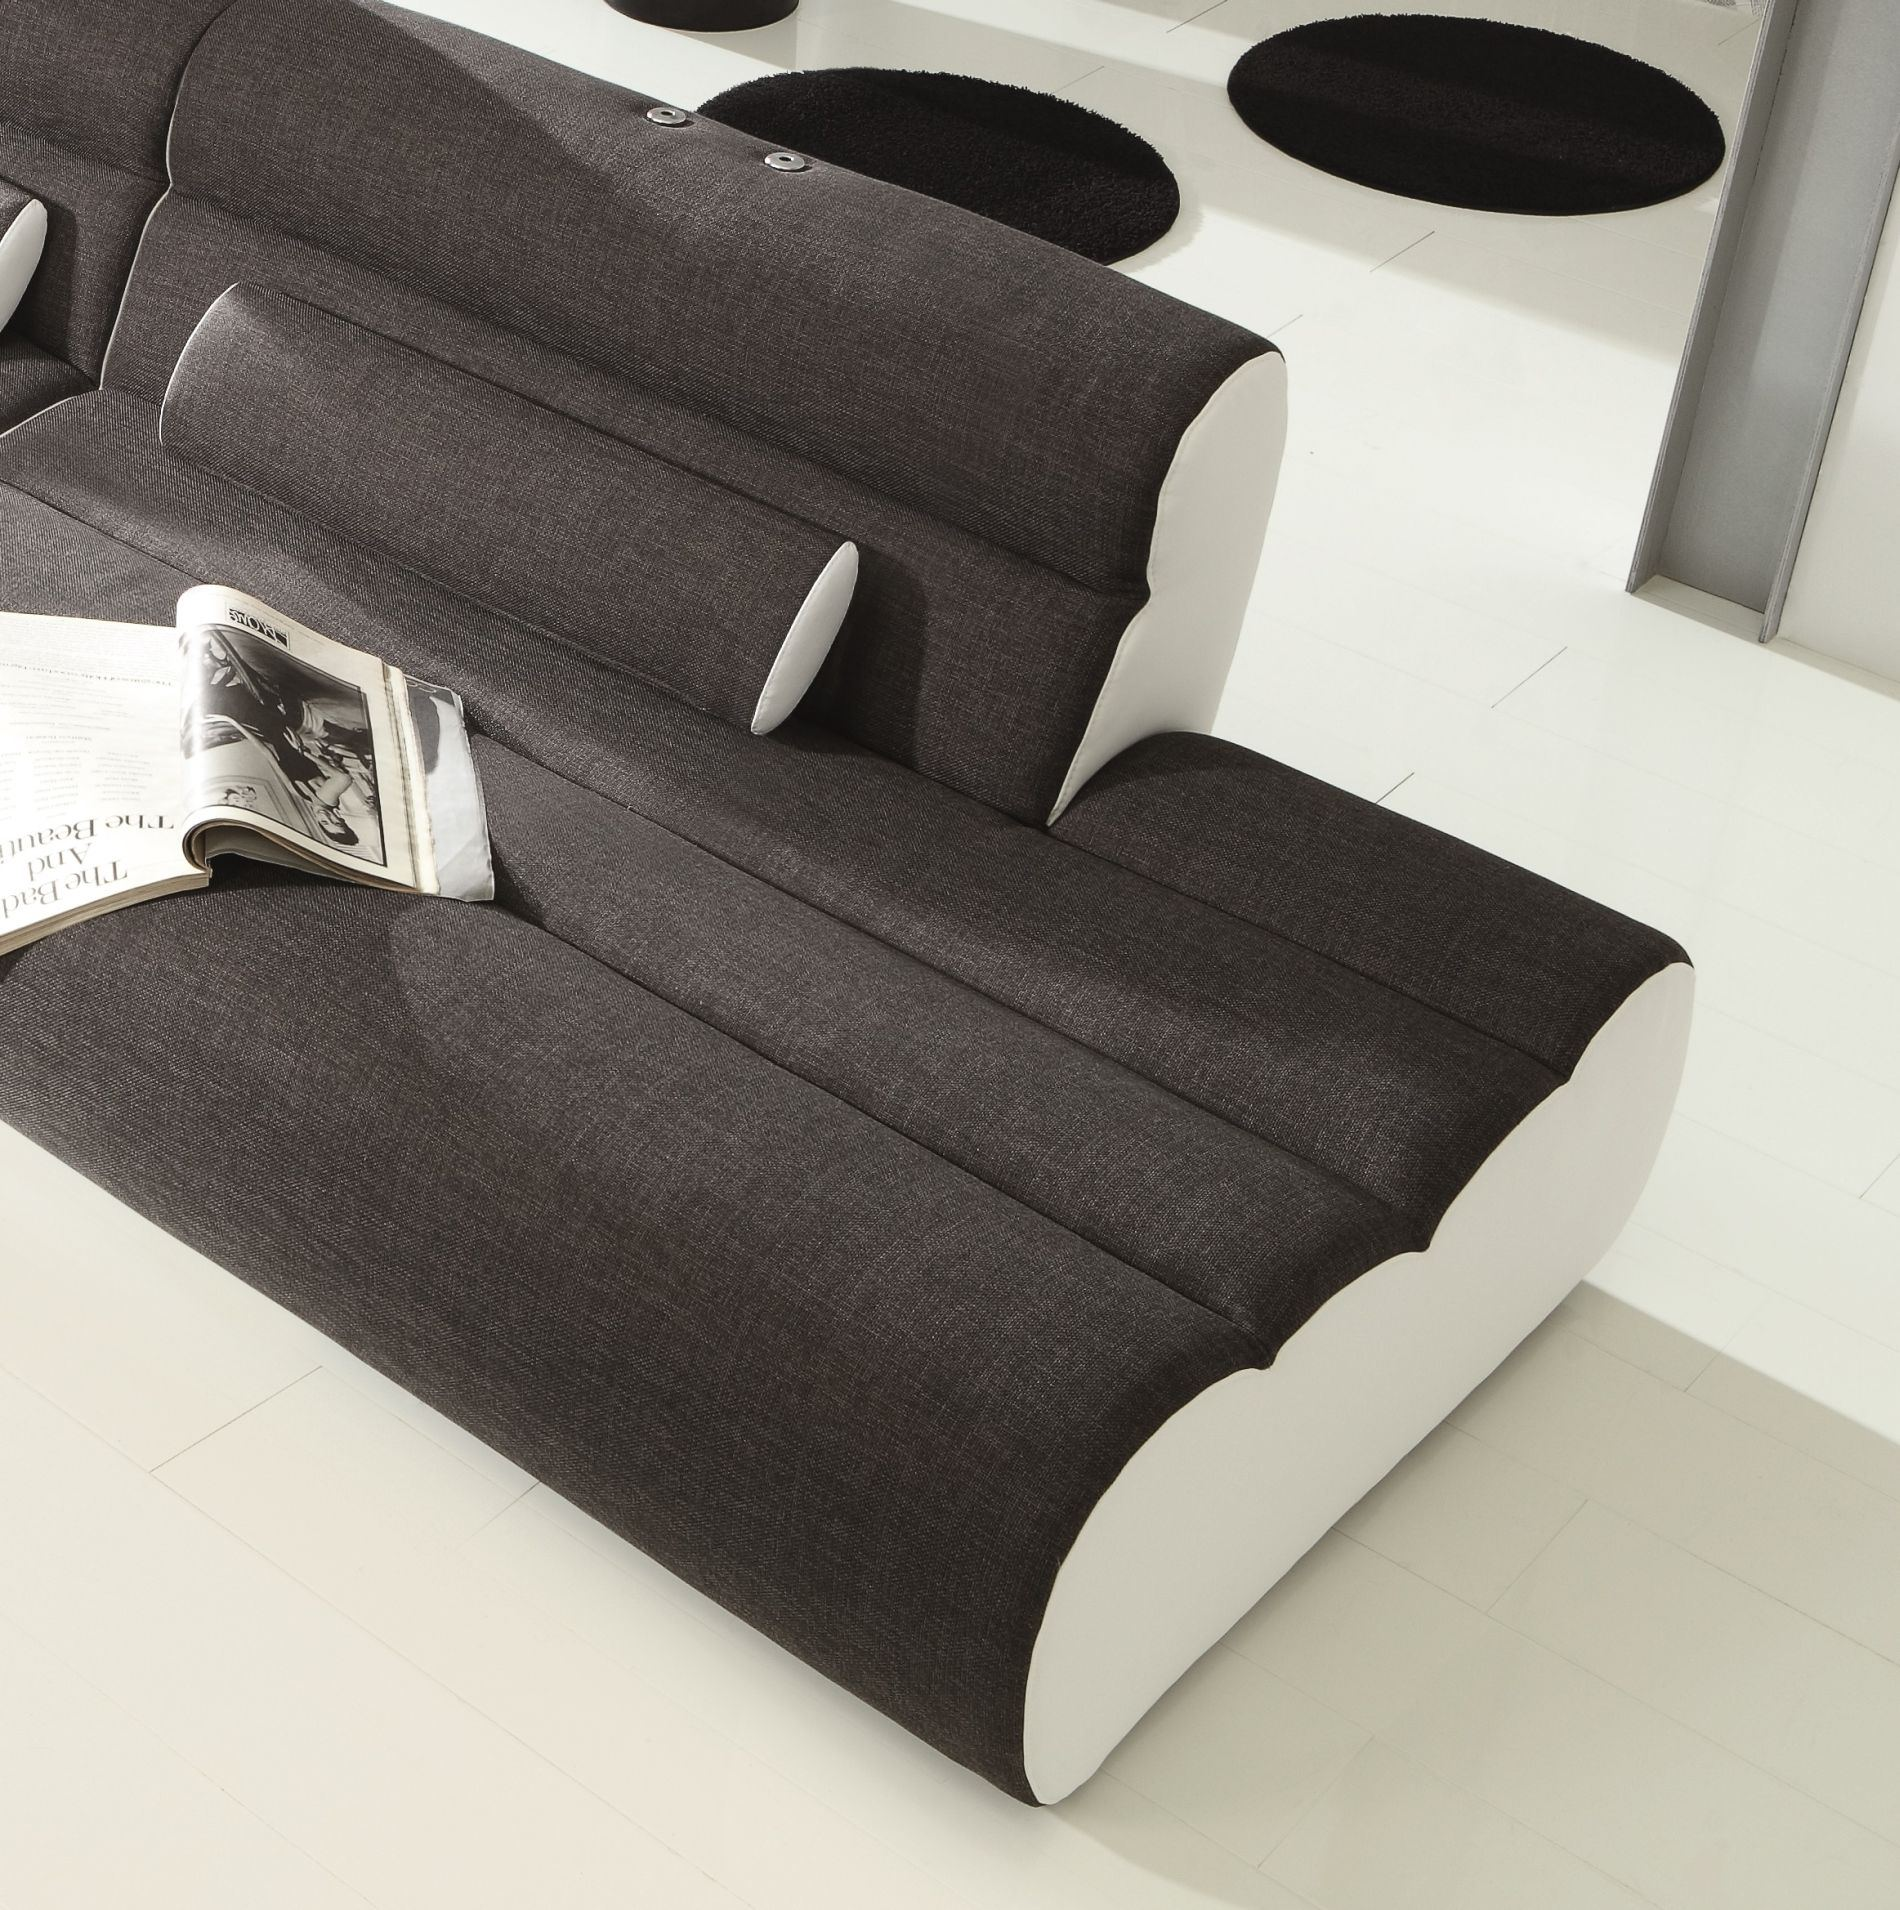 systemsofa ecksofa elements 4 create your own style. Black Bedroom Furniture Sets. Home Design Ideas